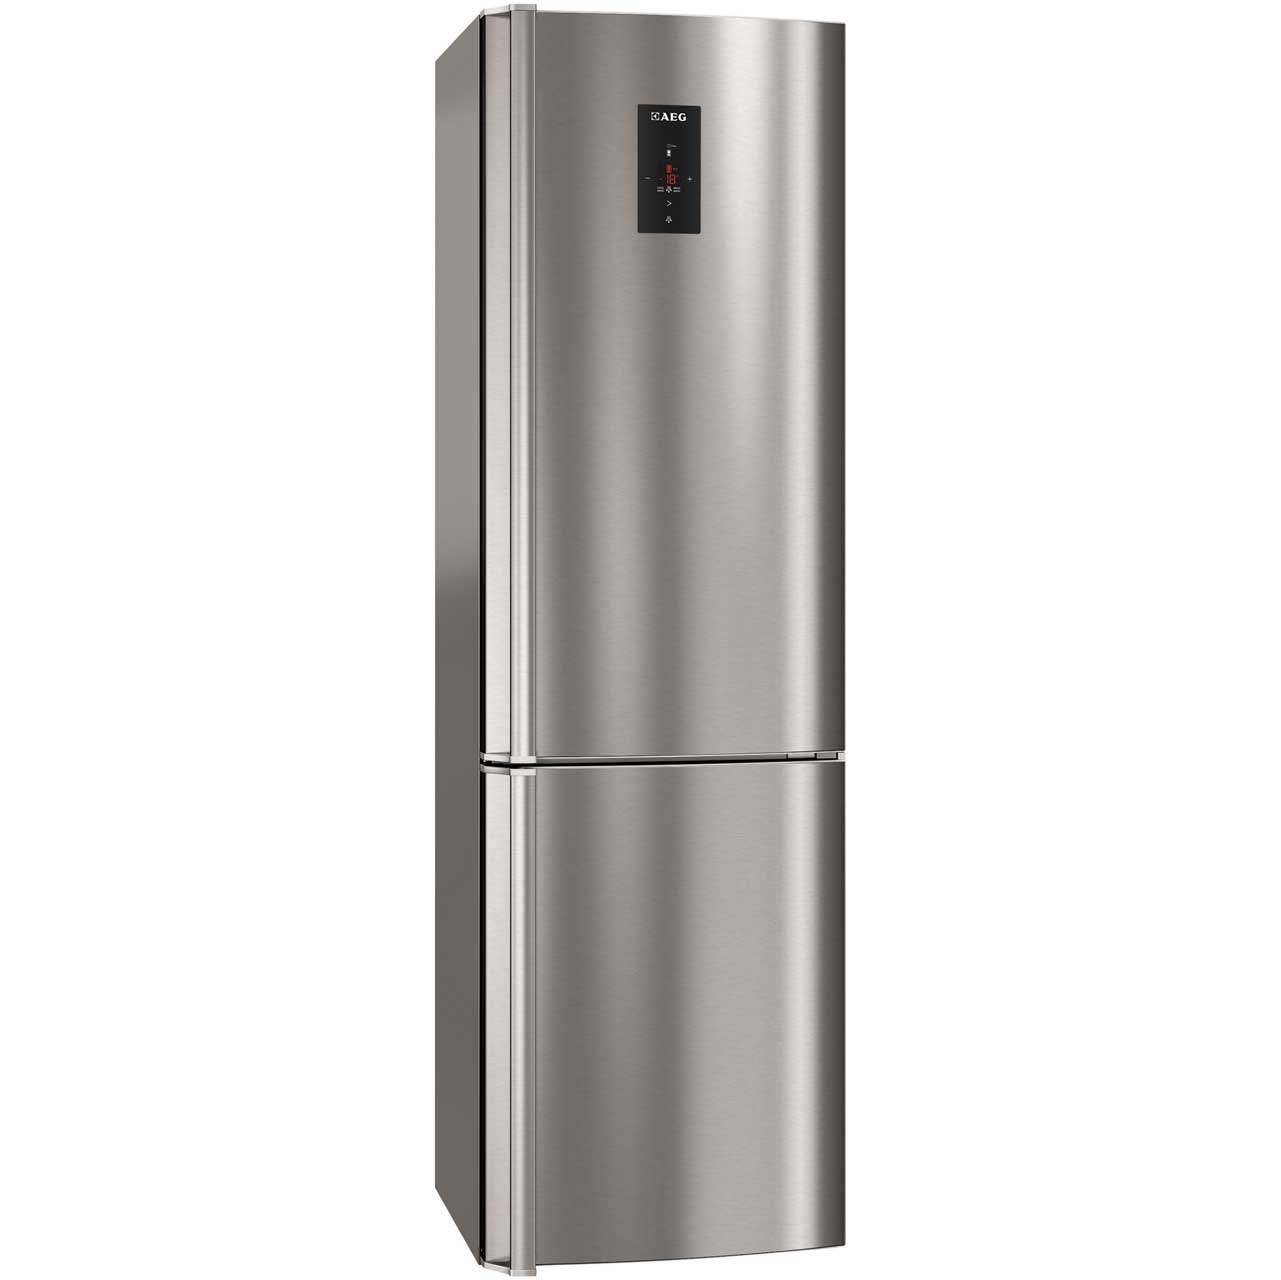 AEG S83520CMX2 Free Standing Fridge Freezer Frost Free in Stainless Steel